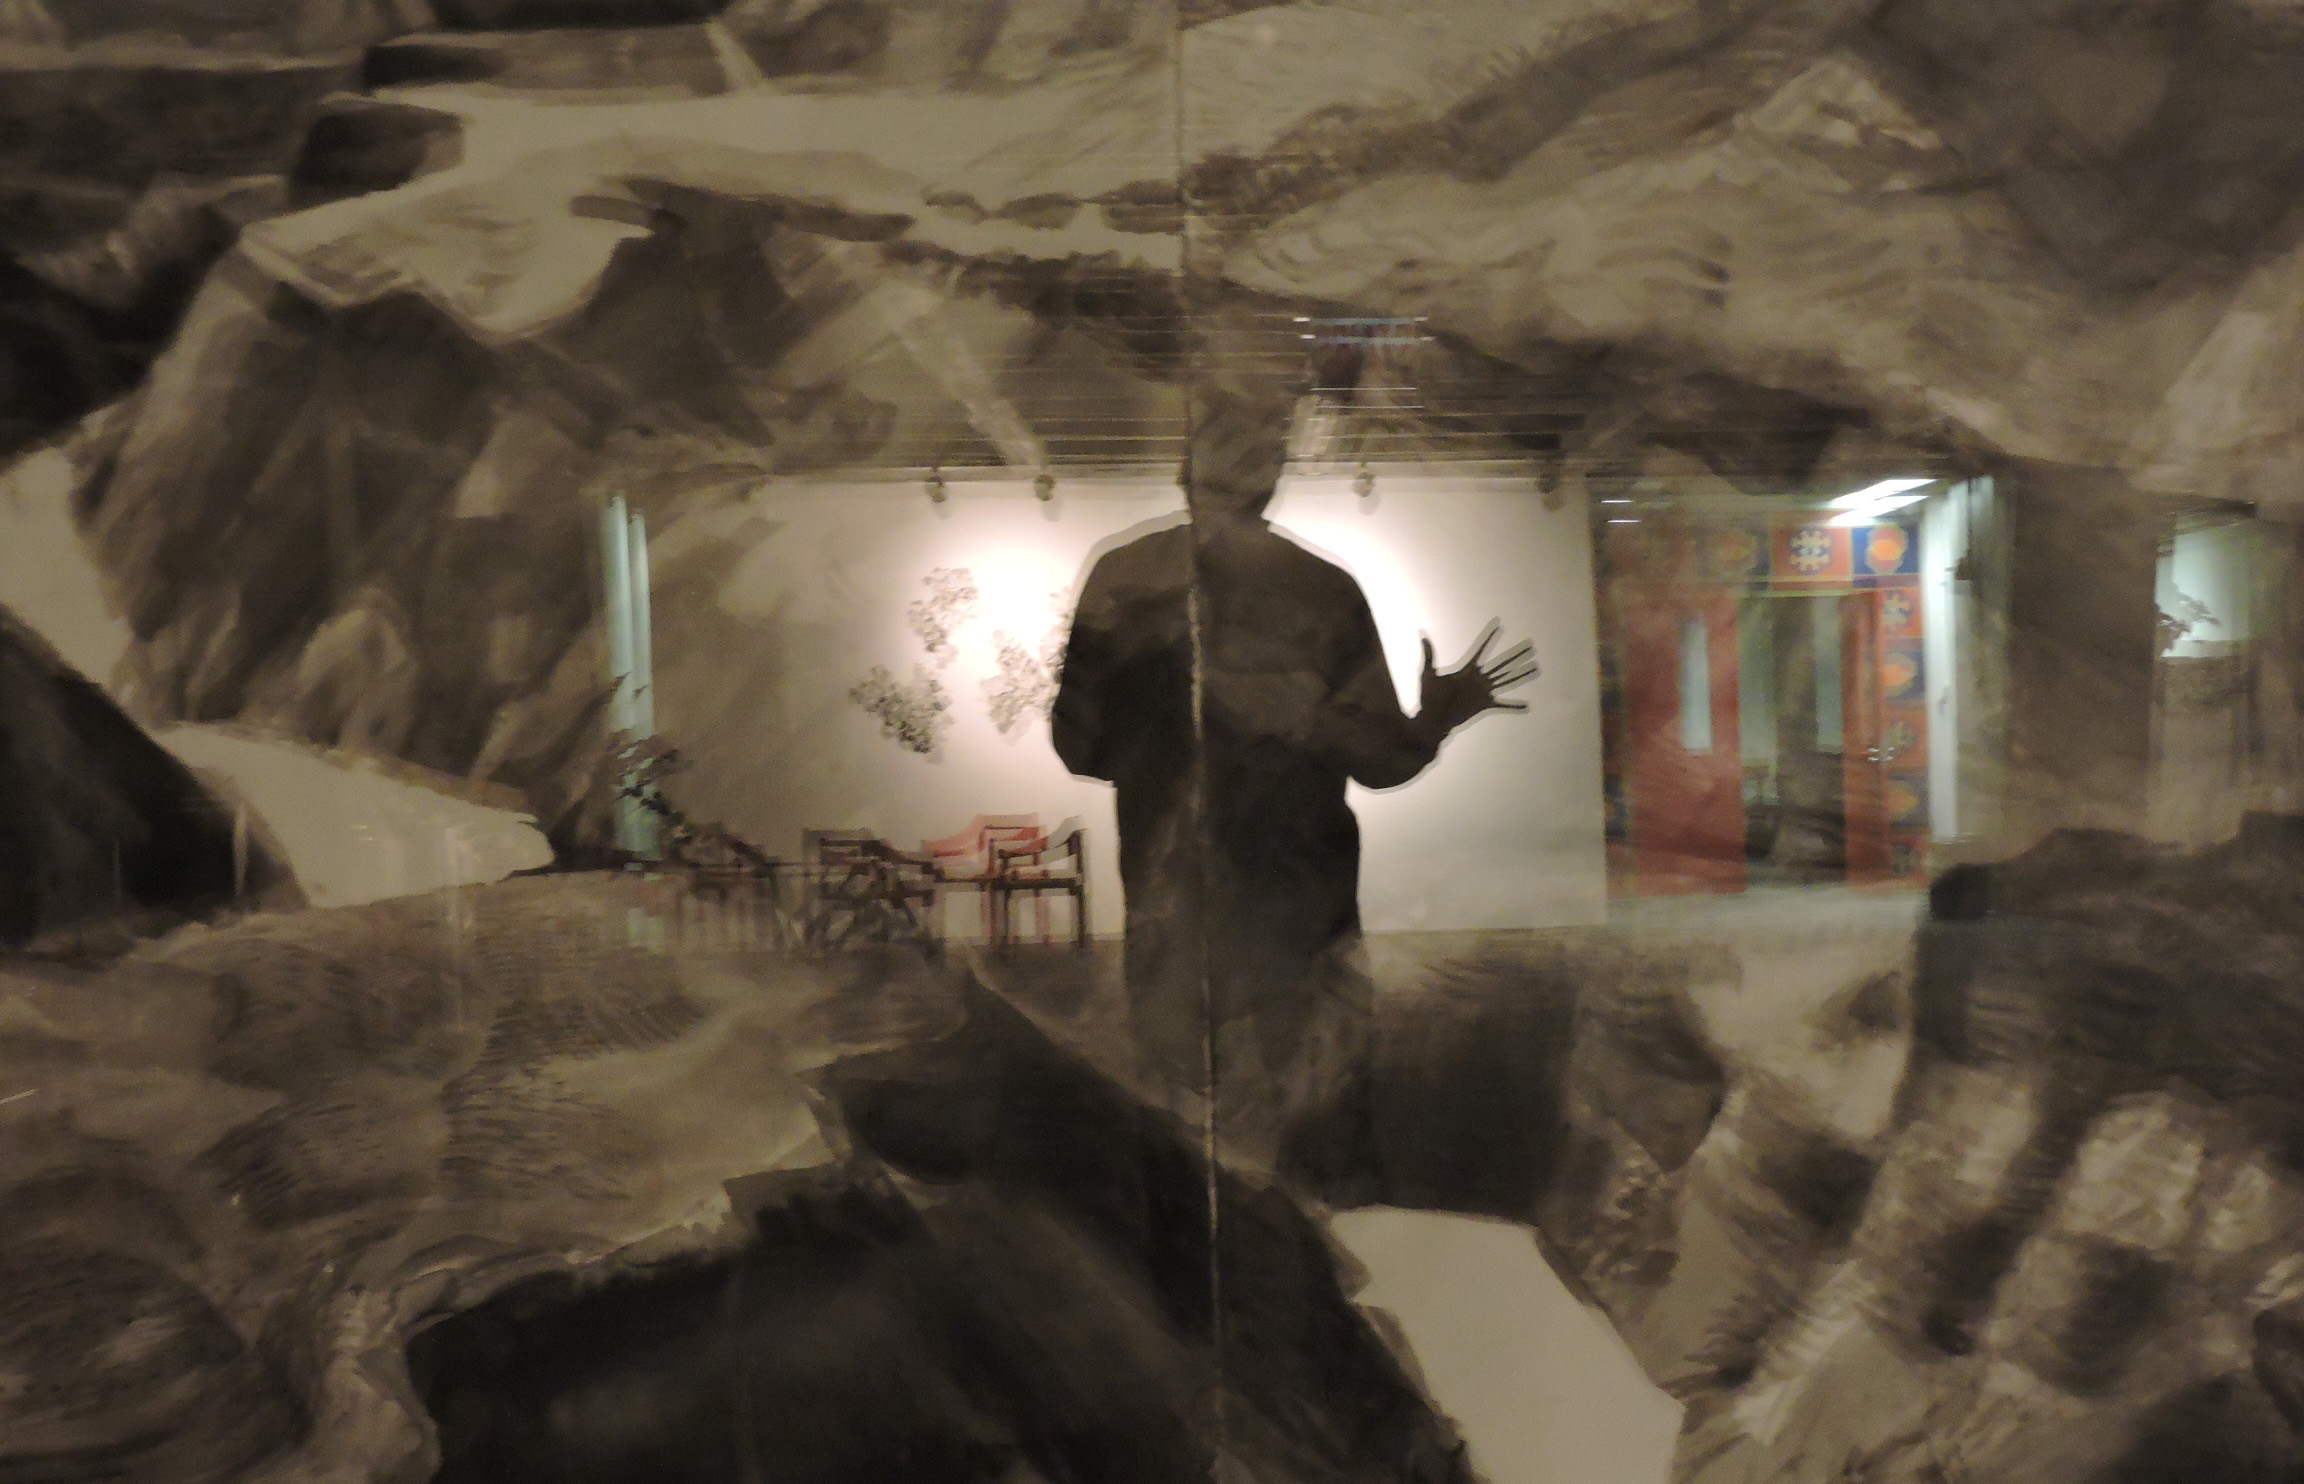 """The photographer's reflection appears in the glass that covers Martyl Langsdorf's painting """"The Canyon,"""" on display in the Fermilab Art Gallery. Photo: Rick Meaderdes, ESH&Q"""